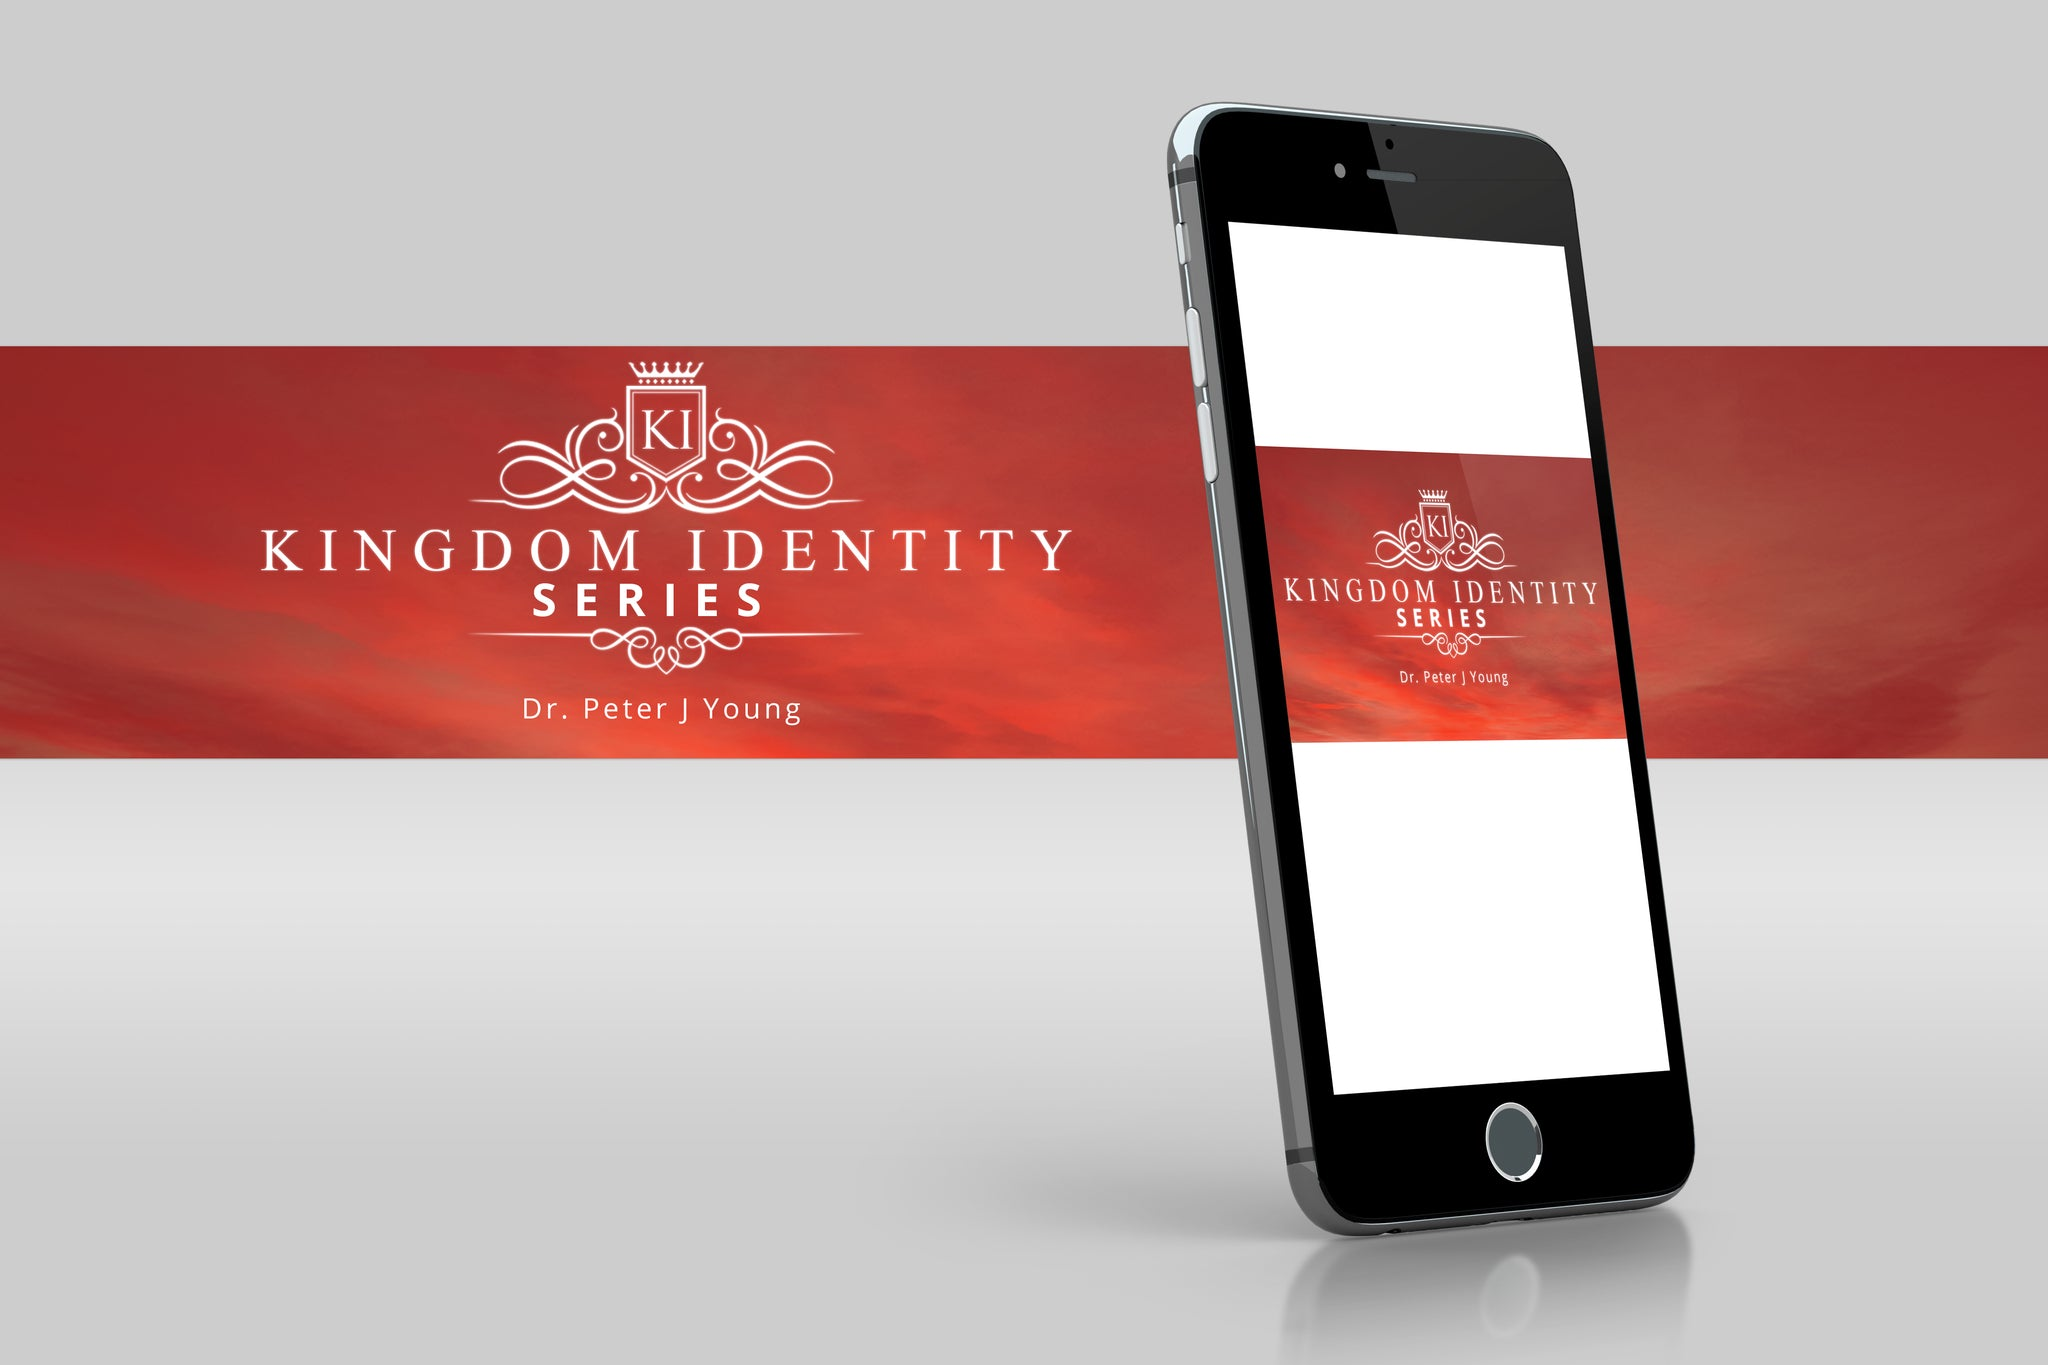 Kingdom Identity Series: (Video) with Peter J. Young